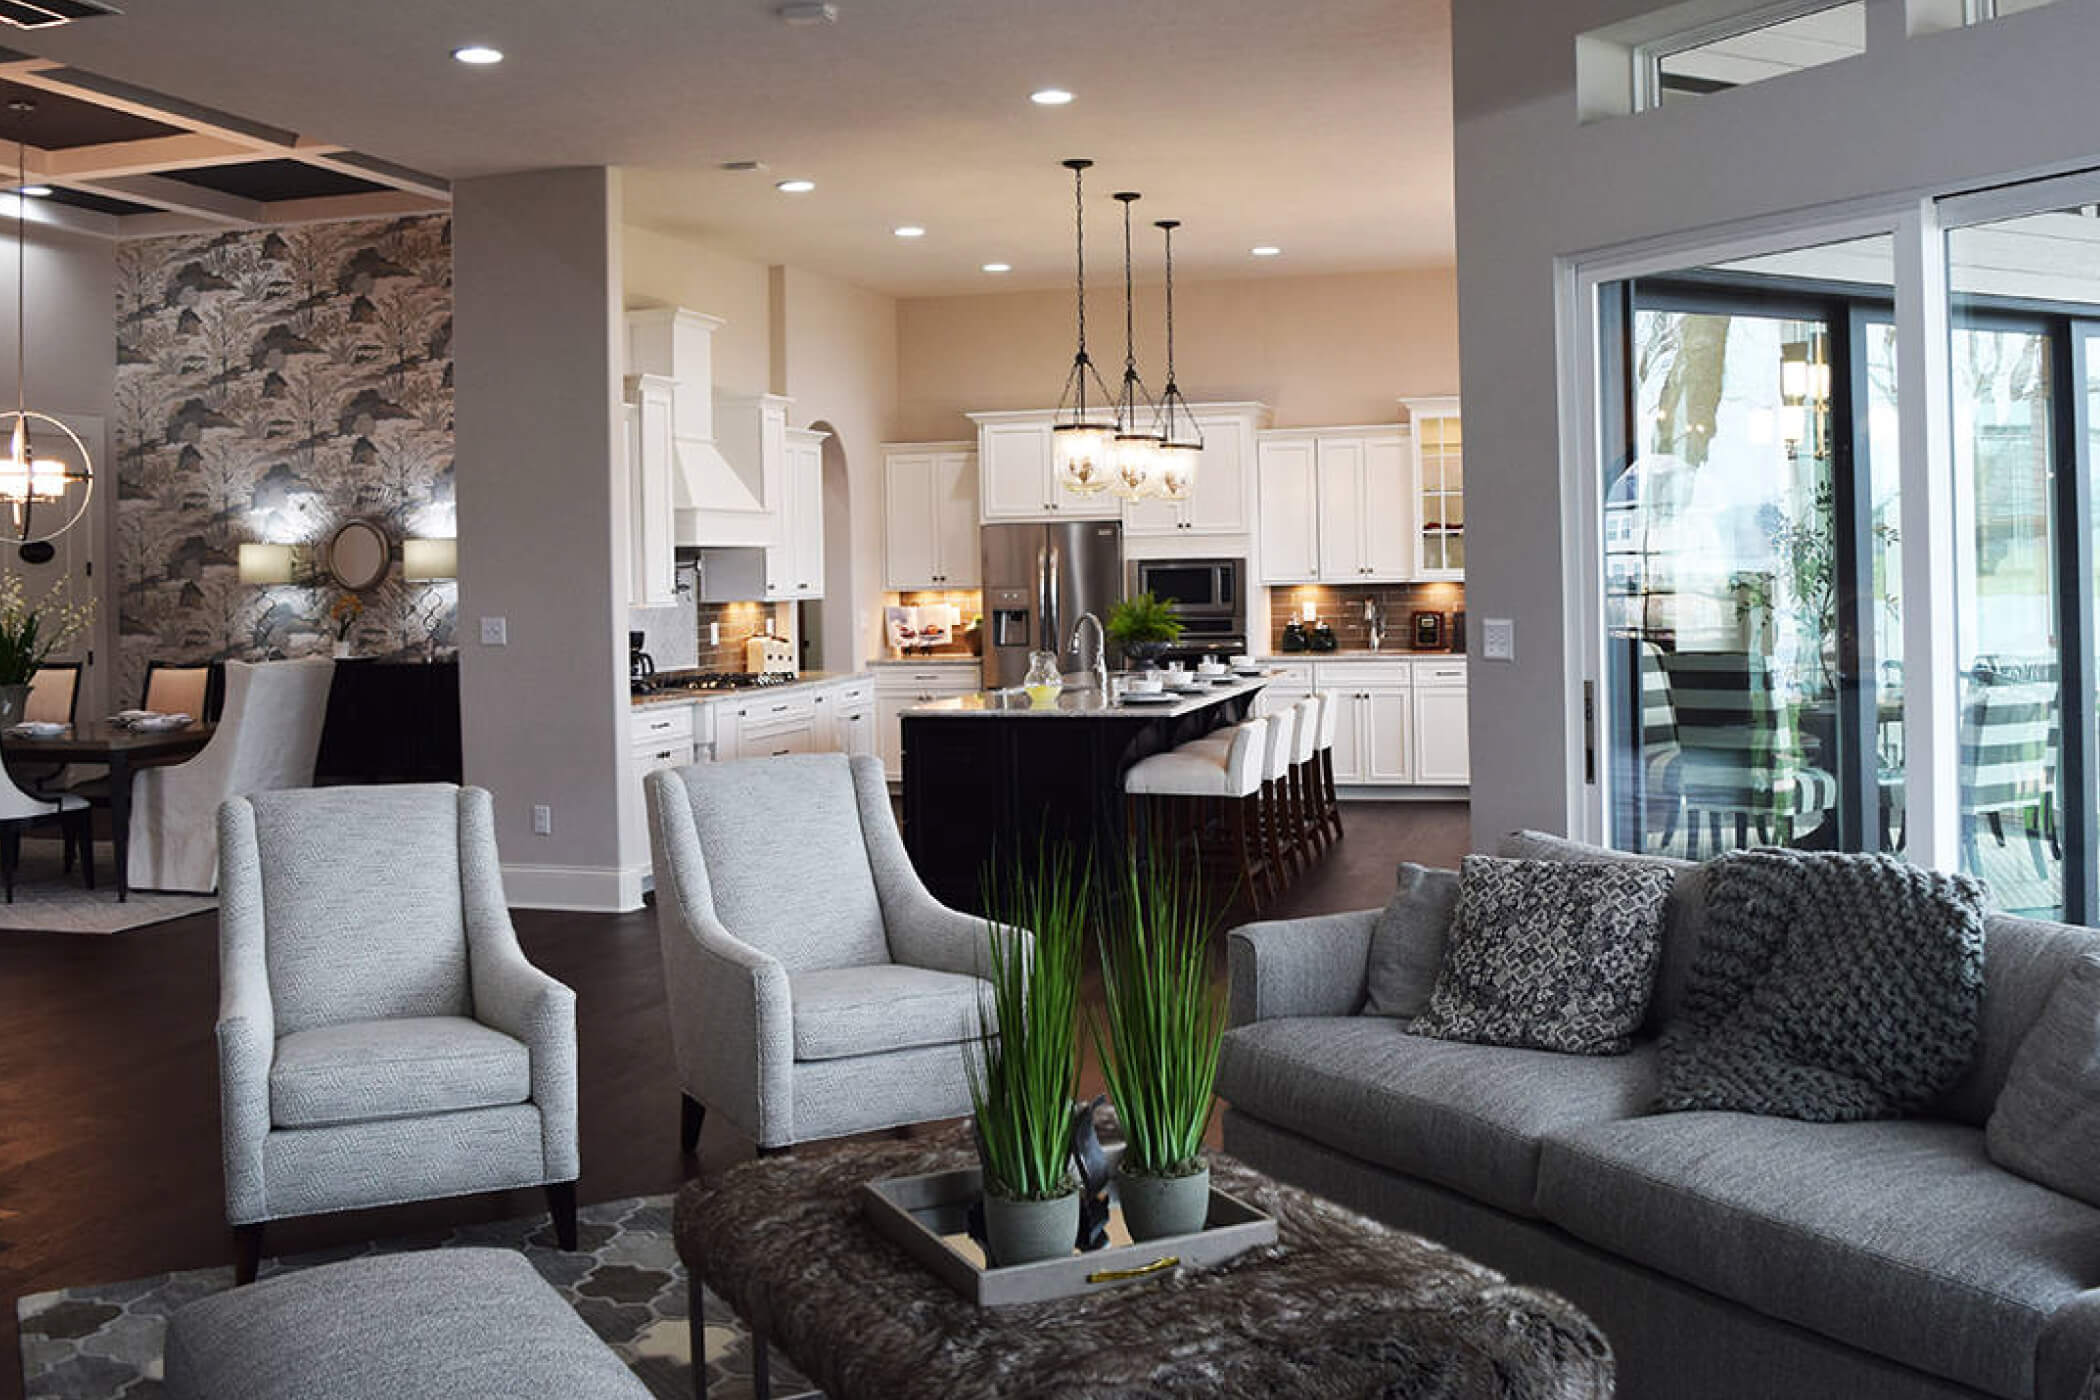 Grey couch and decorative chairs in the living room of one of Waterfront of West Clay's custom homes